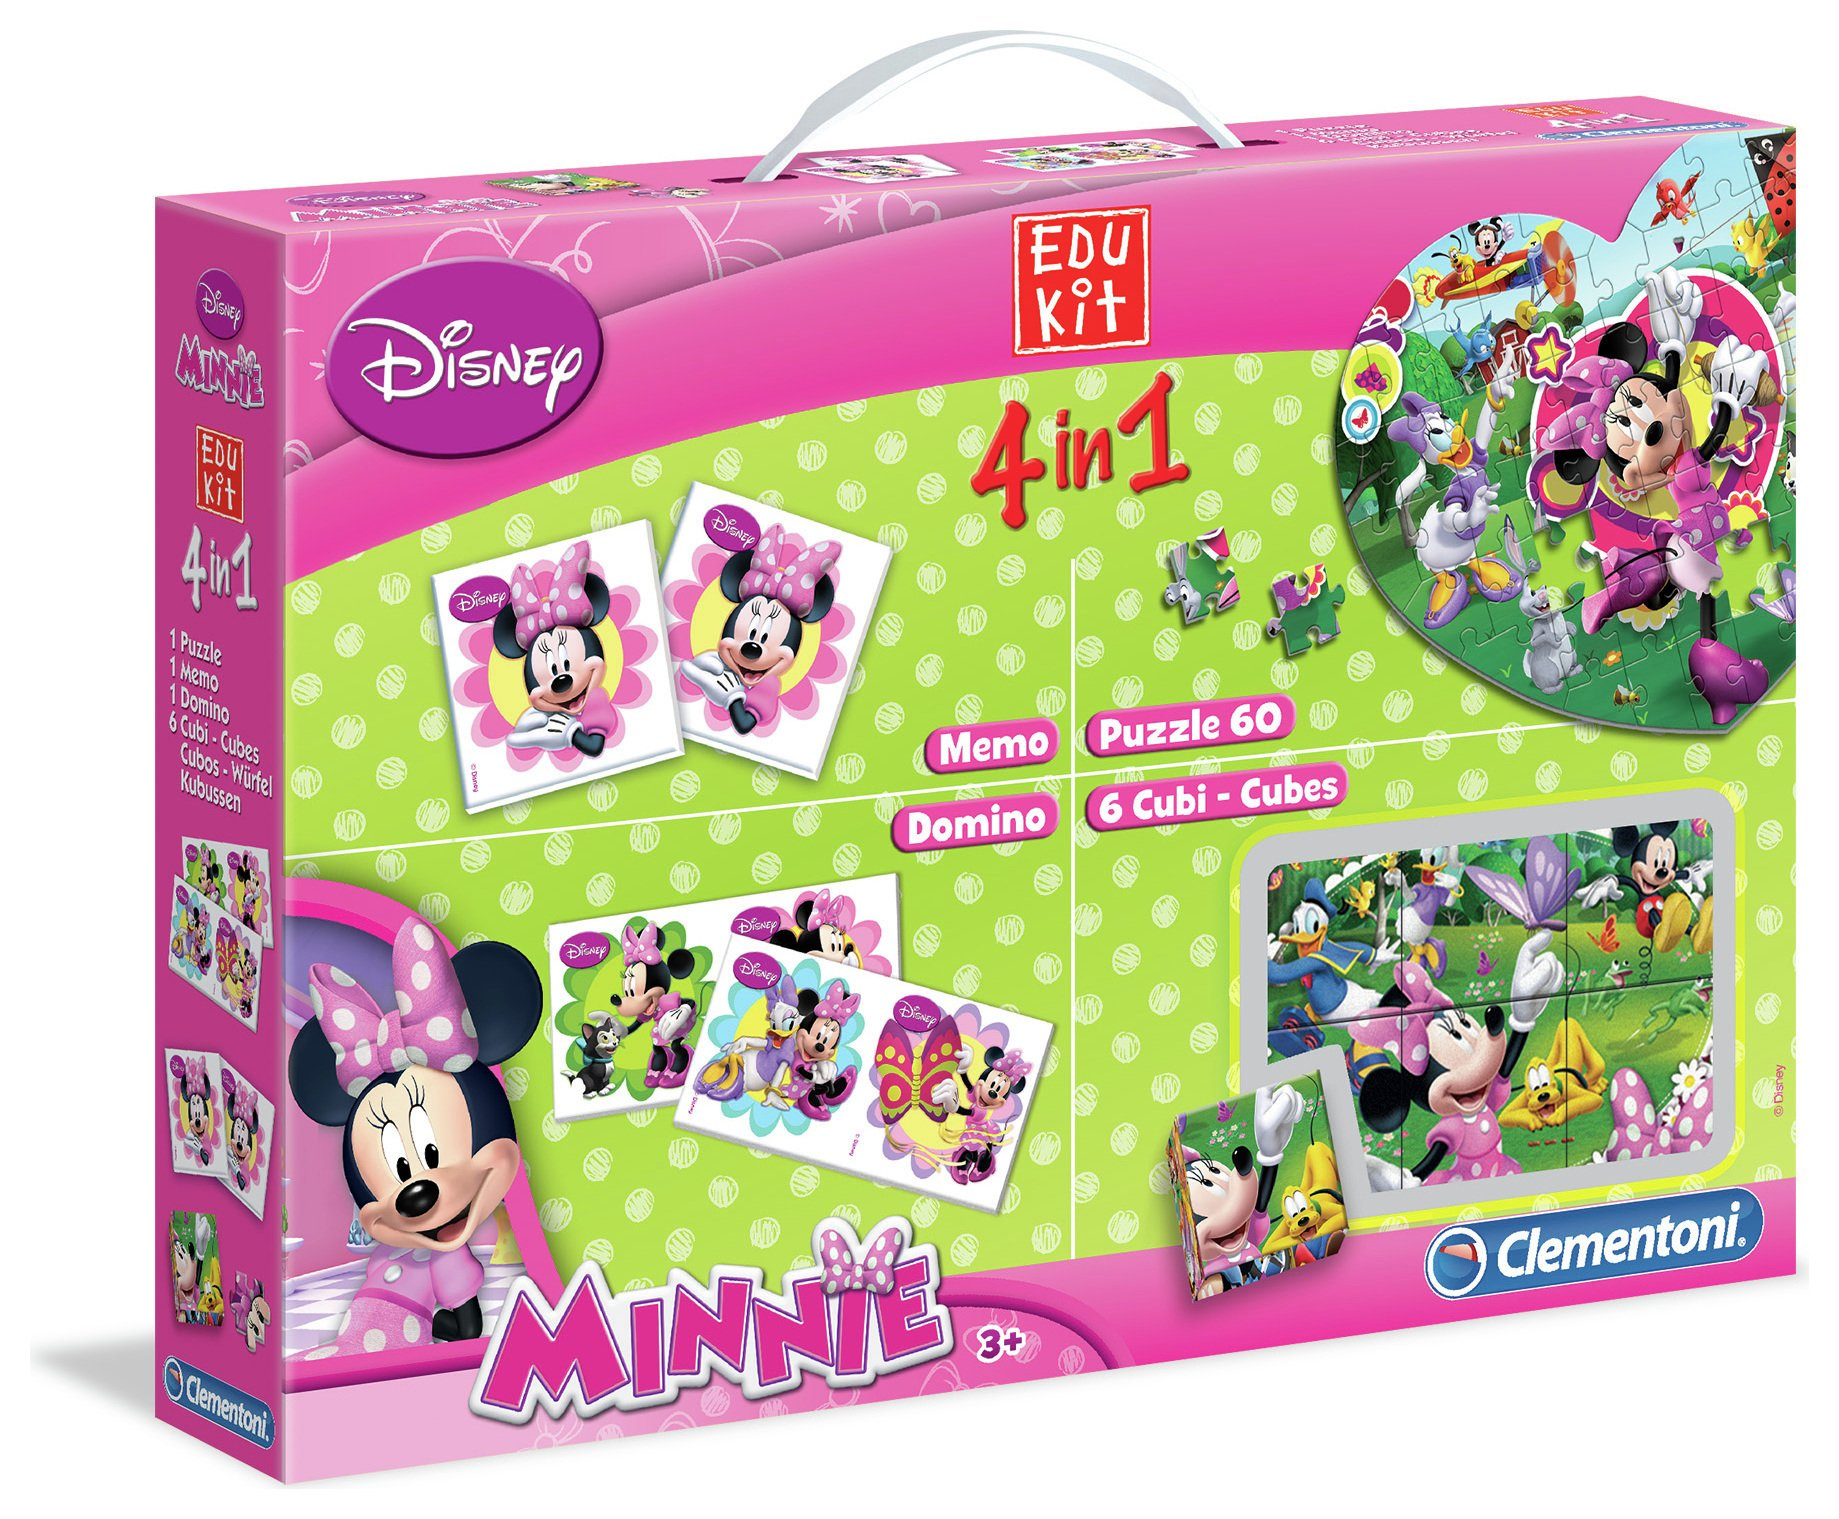 Image of Clementoni Minnie Mouse 4 in 1 Games Set.